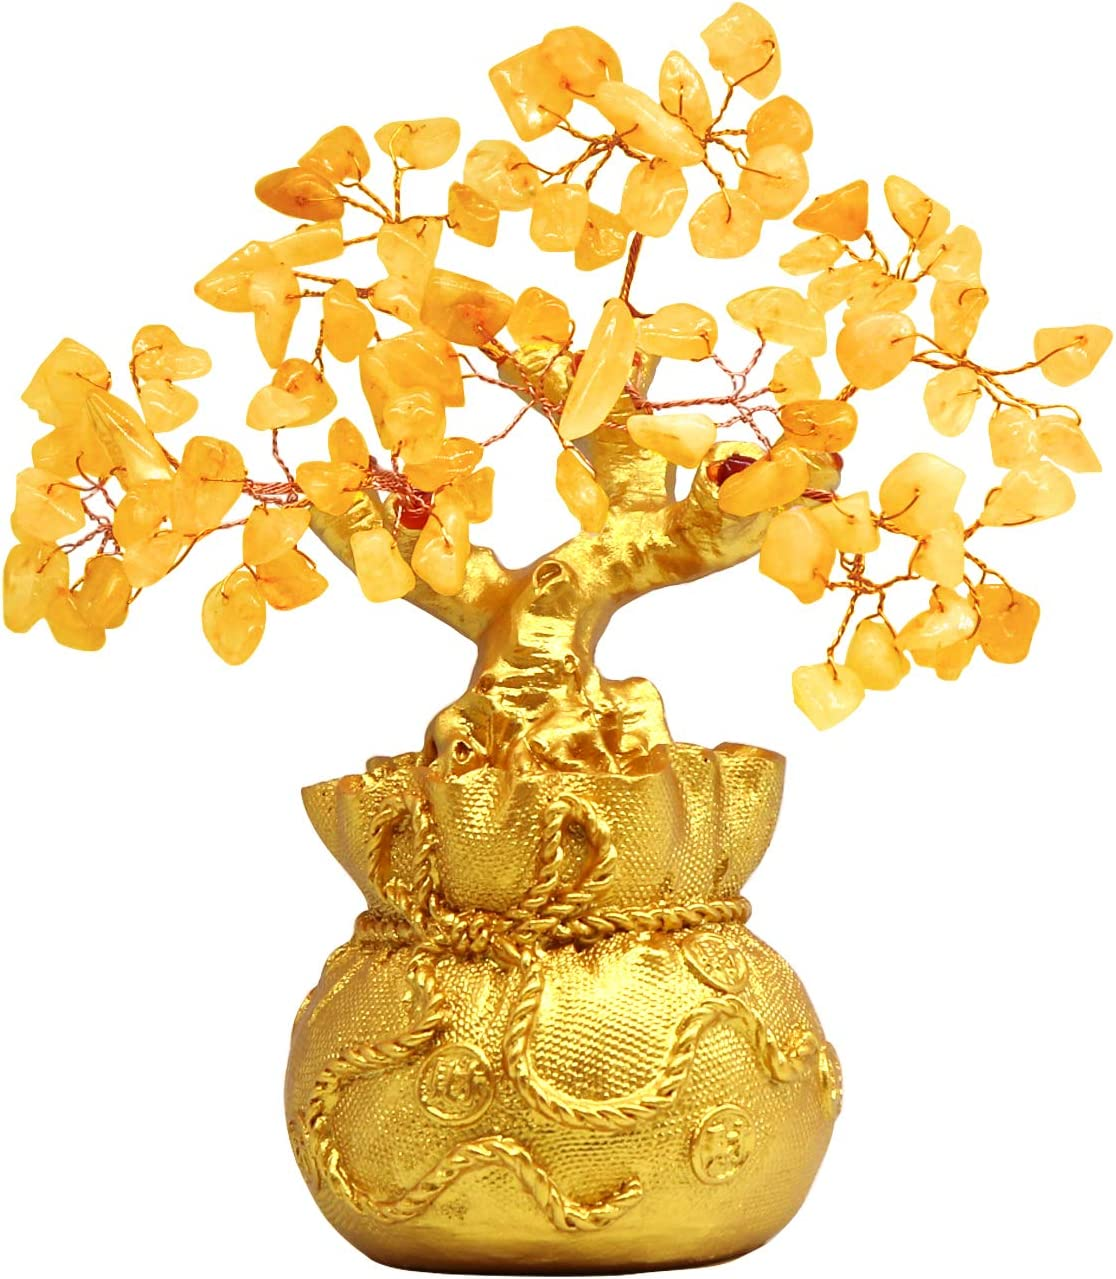 iTree Citrine Tree Bonsai Tree Quartz Crystal Money Tree Feng Shui Decoration for Wealth and Luck (Yellow)